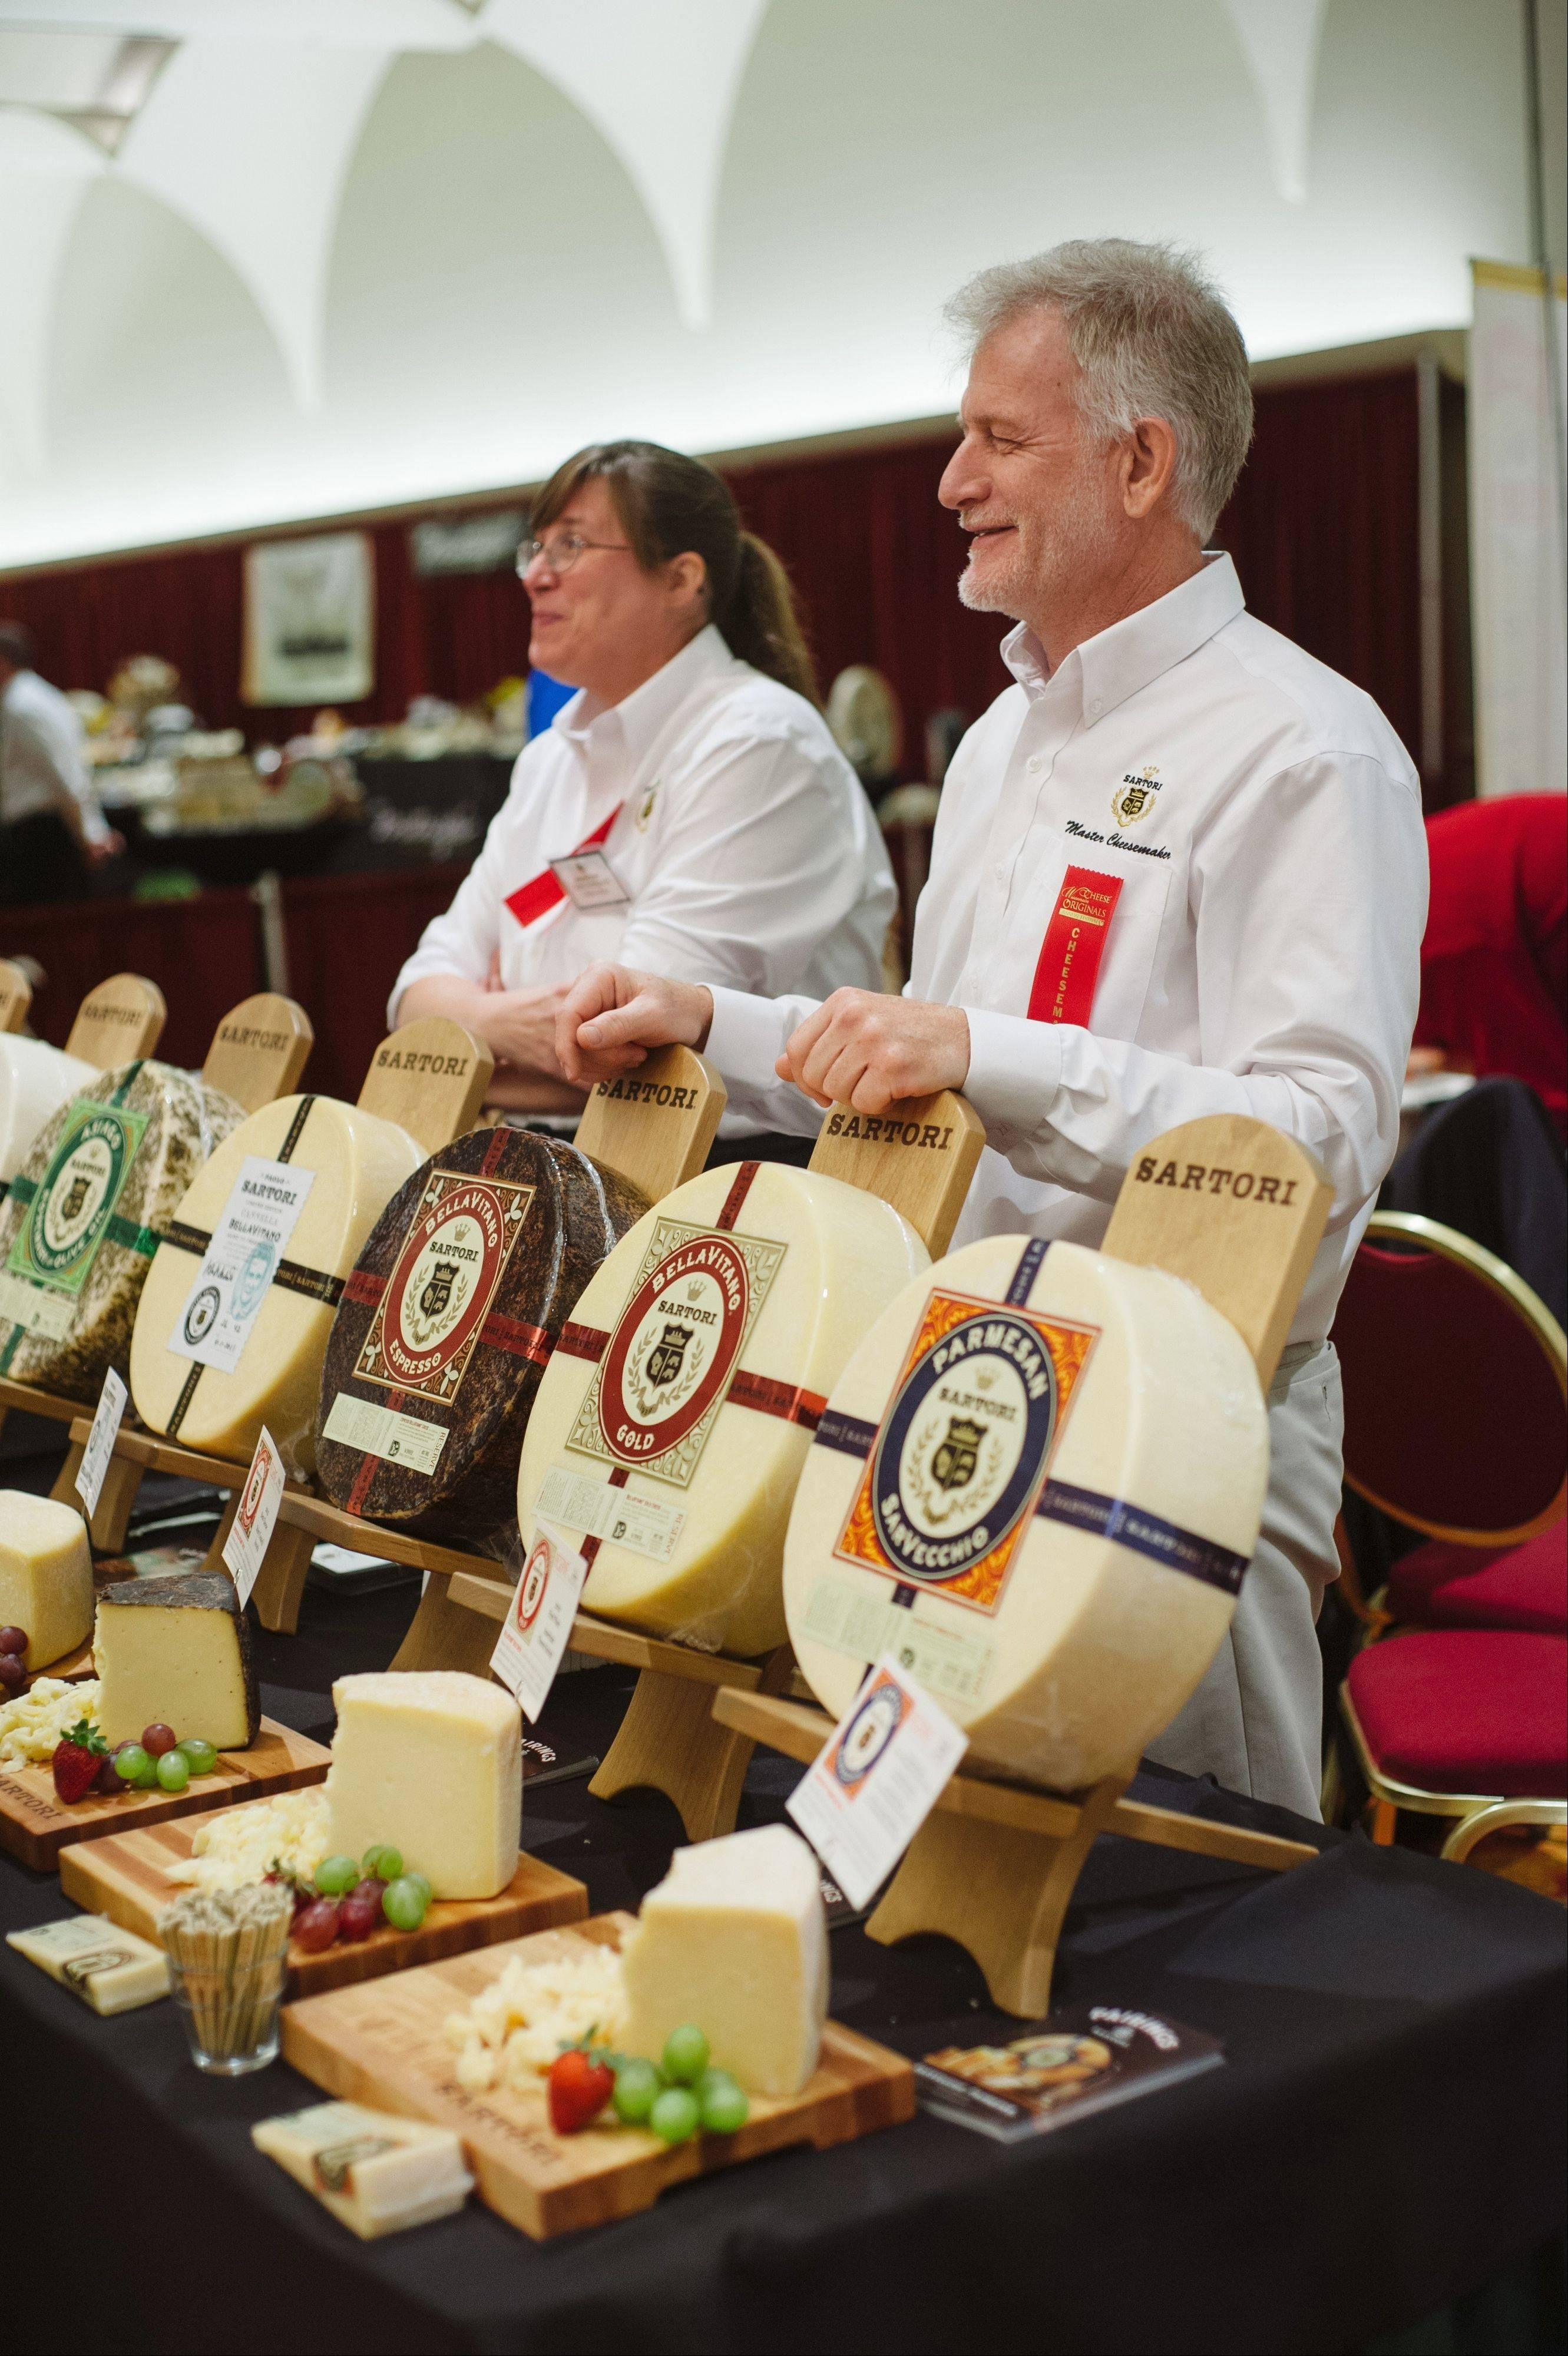 Master Cheesemakers from Sartori Cheese are part of the Meet the Cheesemaker Gala during Wisconsin Cheese Originals Festival Nov. 1-2.